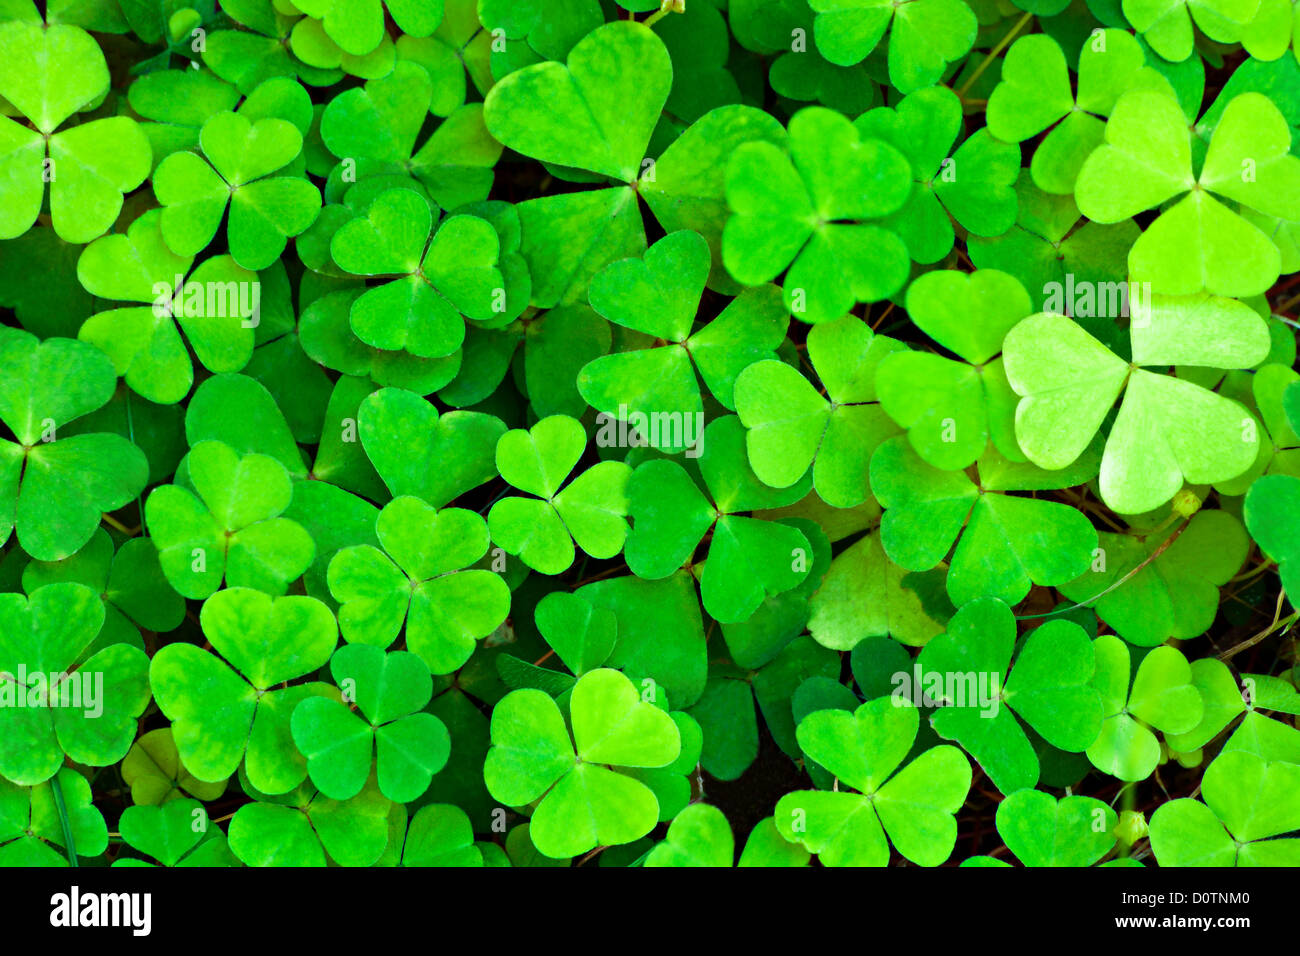 green clover background - Stock Image